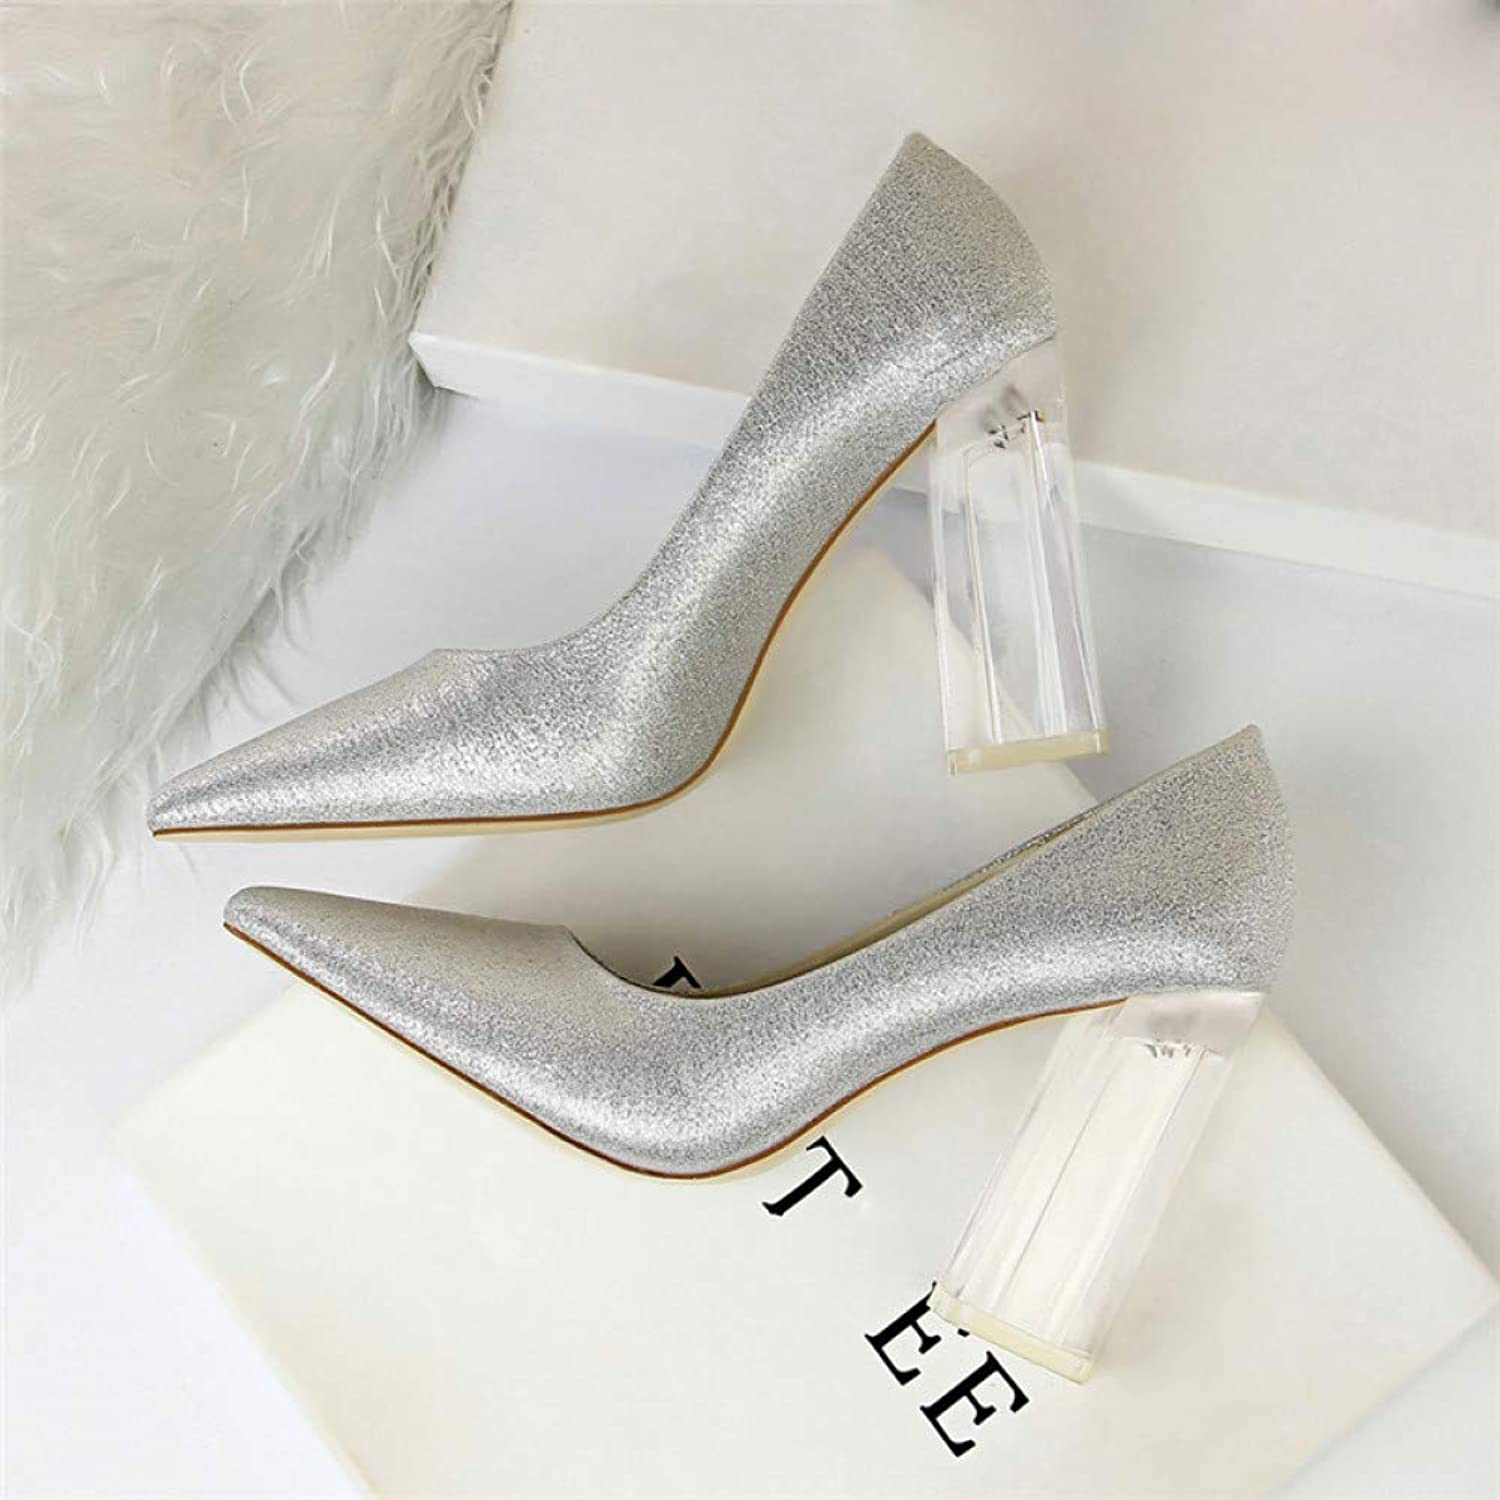 FASZQ Pointed Toe Transparent Block High Heels Stain Yellow Pumps Women Fall Spring Elegant Lady Office Party shoes